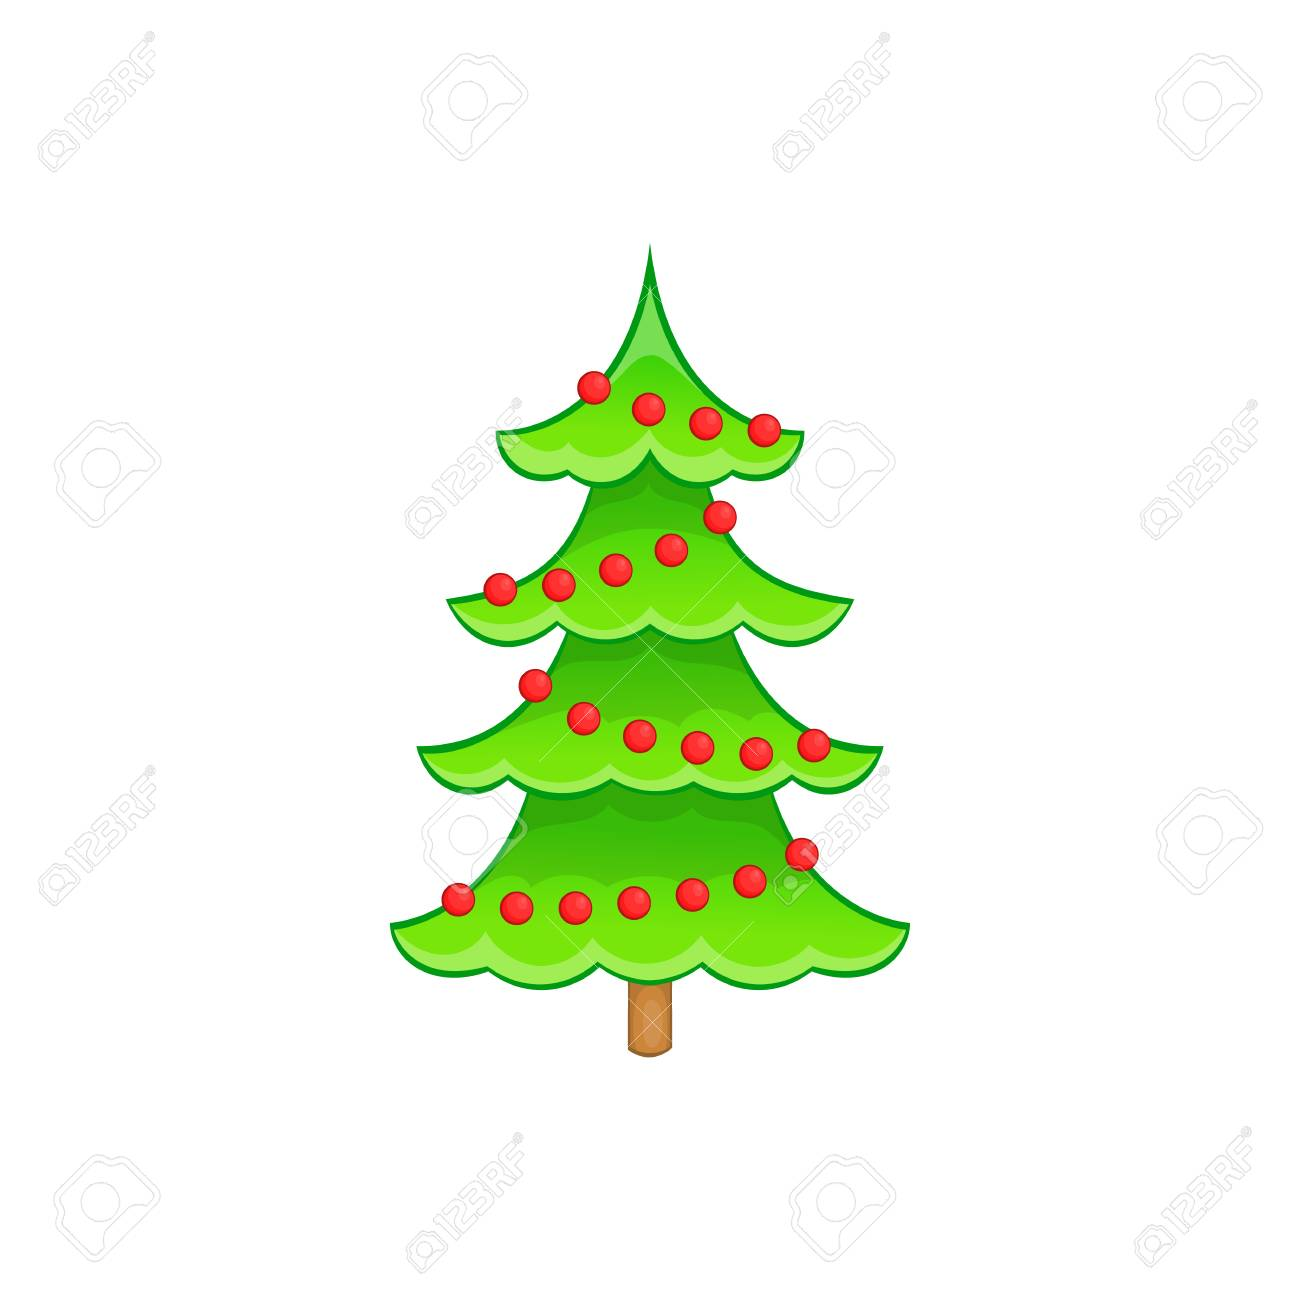 Christmas Tree In Cartoon Style Isolated On White Background Royalty Free Cliparts Vectors And Stock Illustration Image 62360196 Free coreldraw vectors (.cdr) files of christmas. christmas tree in cartoon style isolated on white background